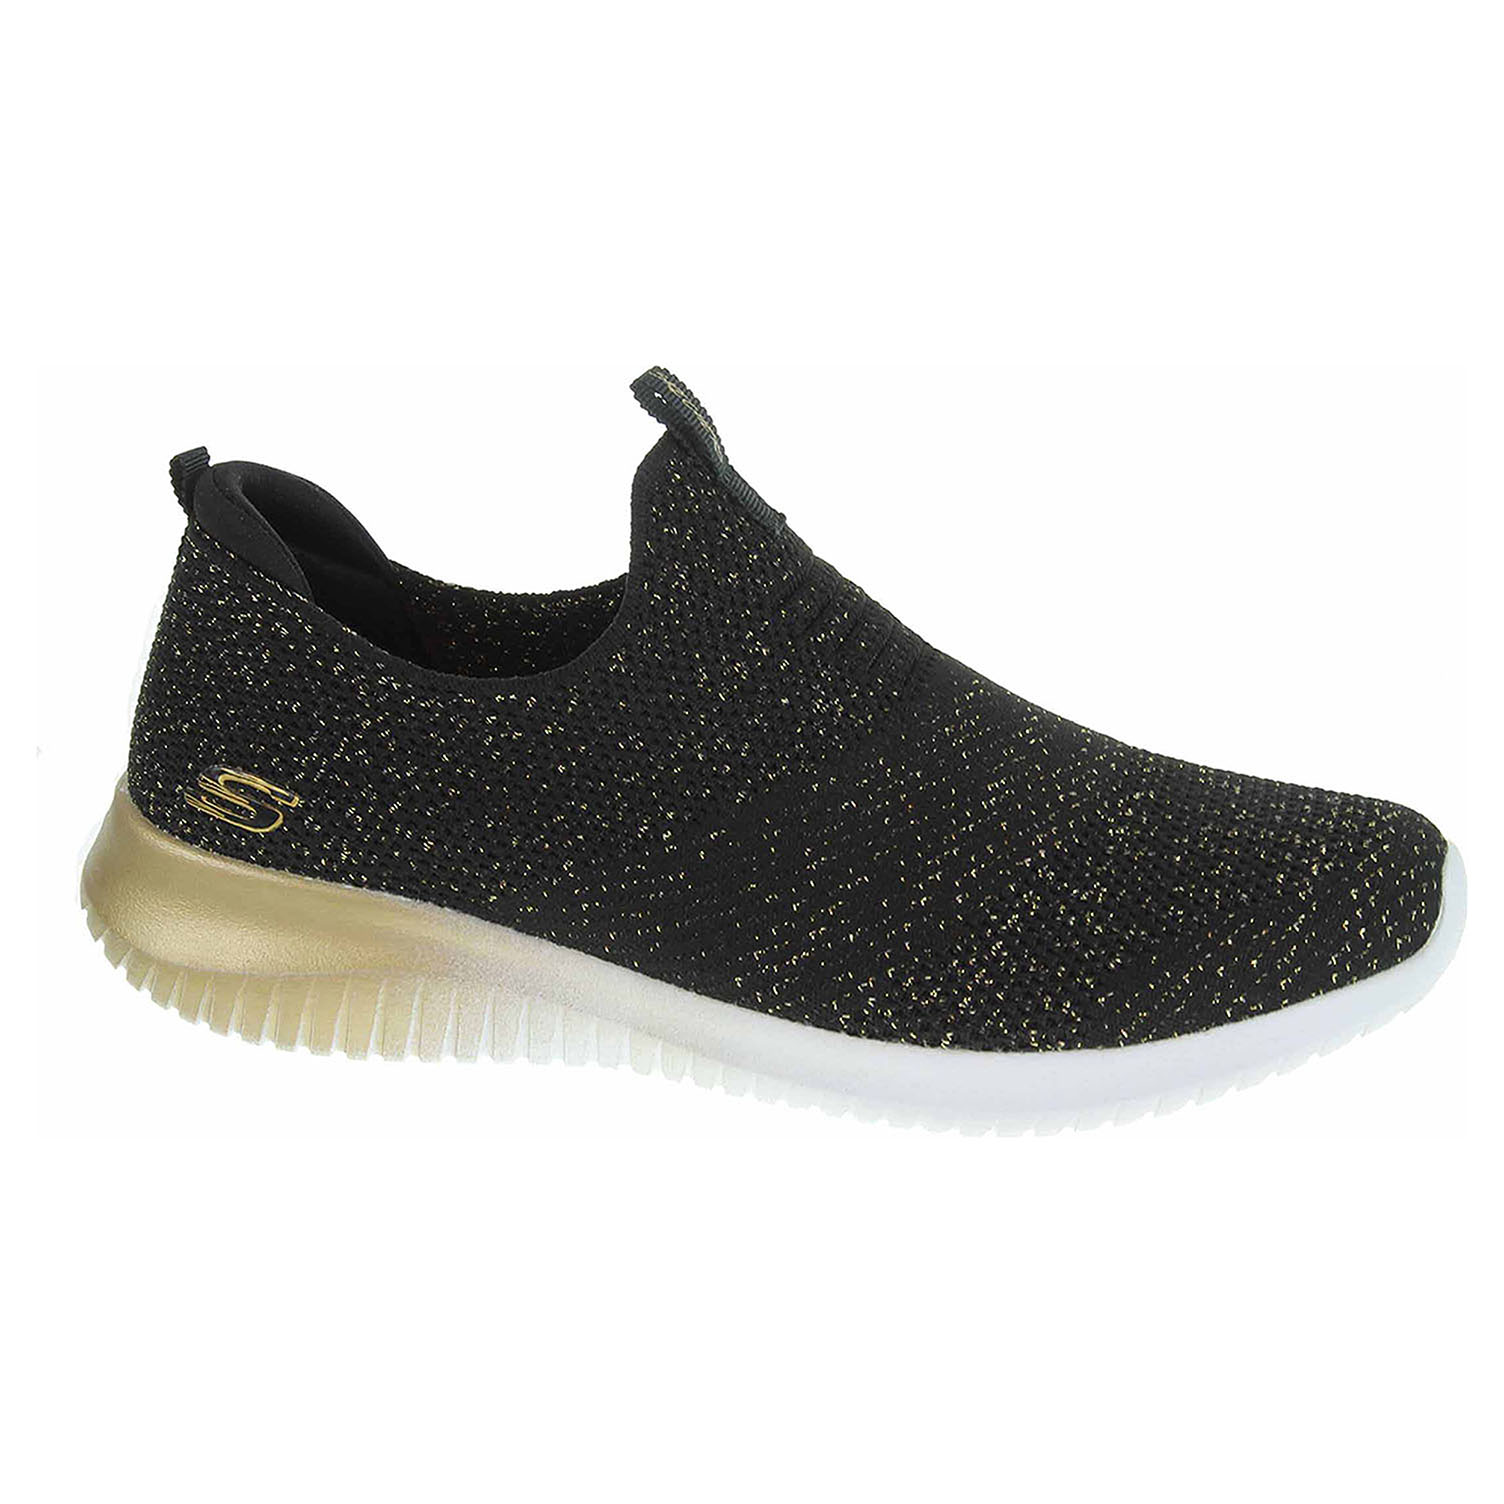 Skechers Ultra Flex - Metamorphic black-gold